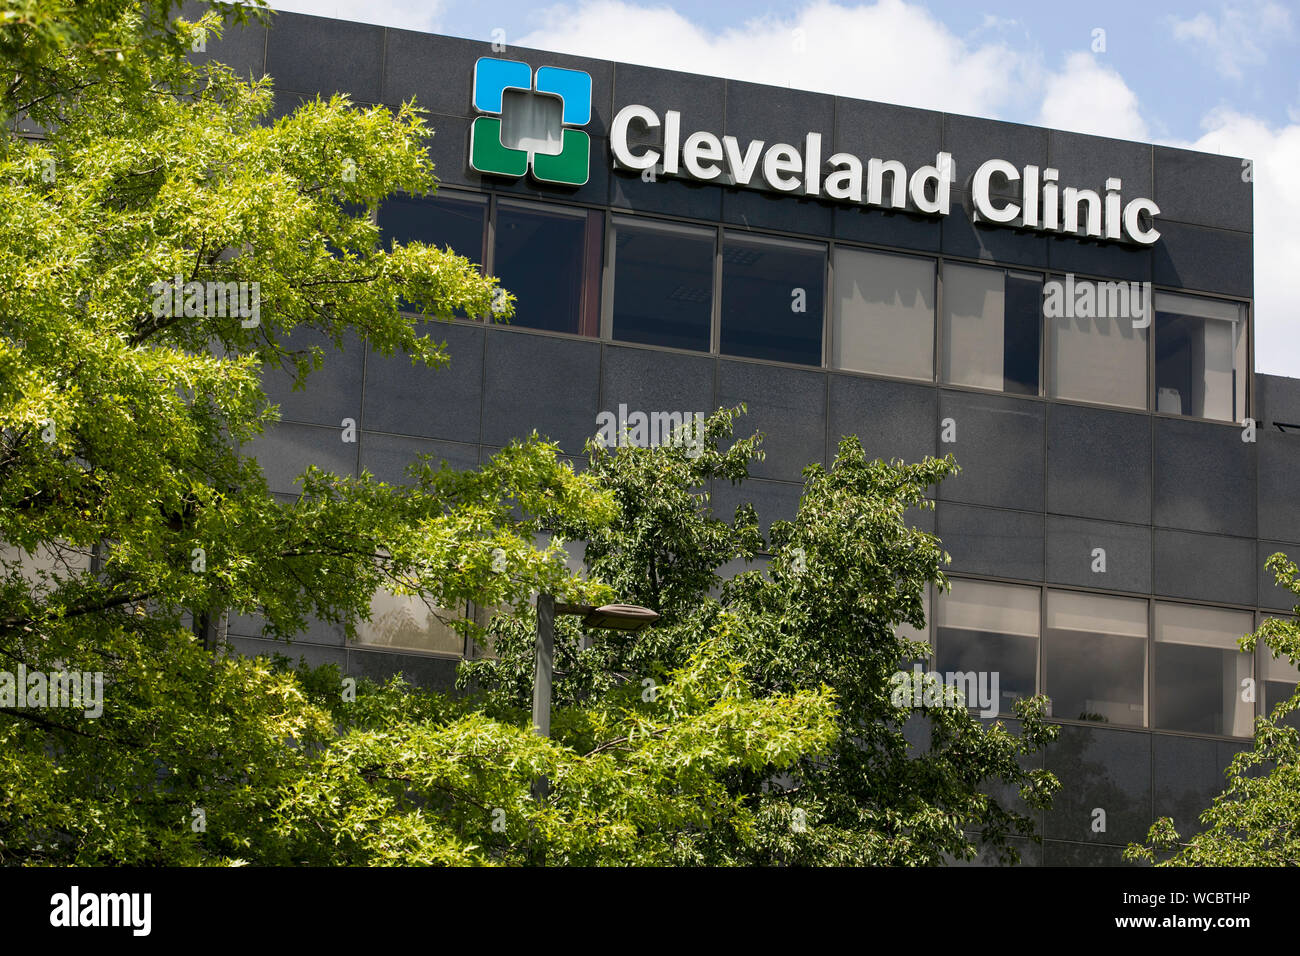 Cleveland Clinic Stock Photos & Cleveland Clinic Stock